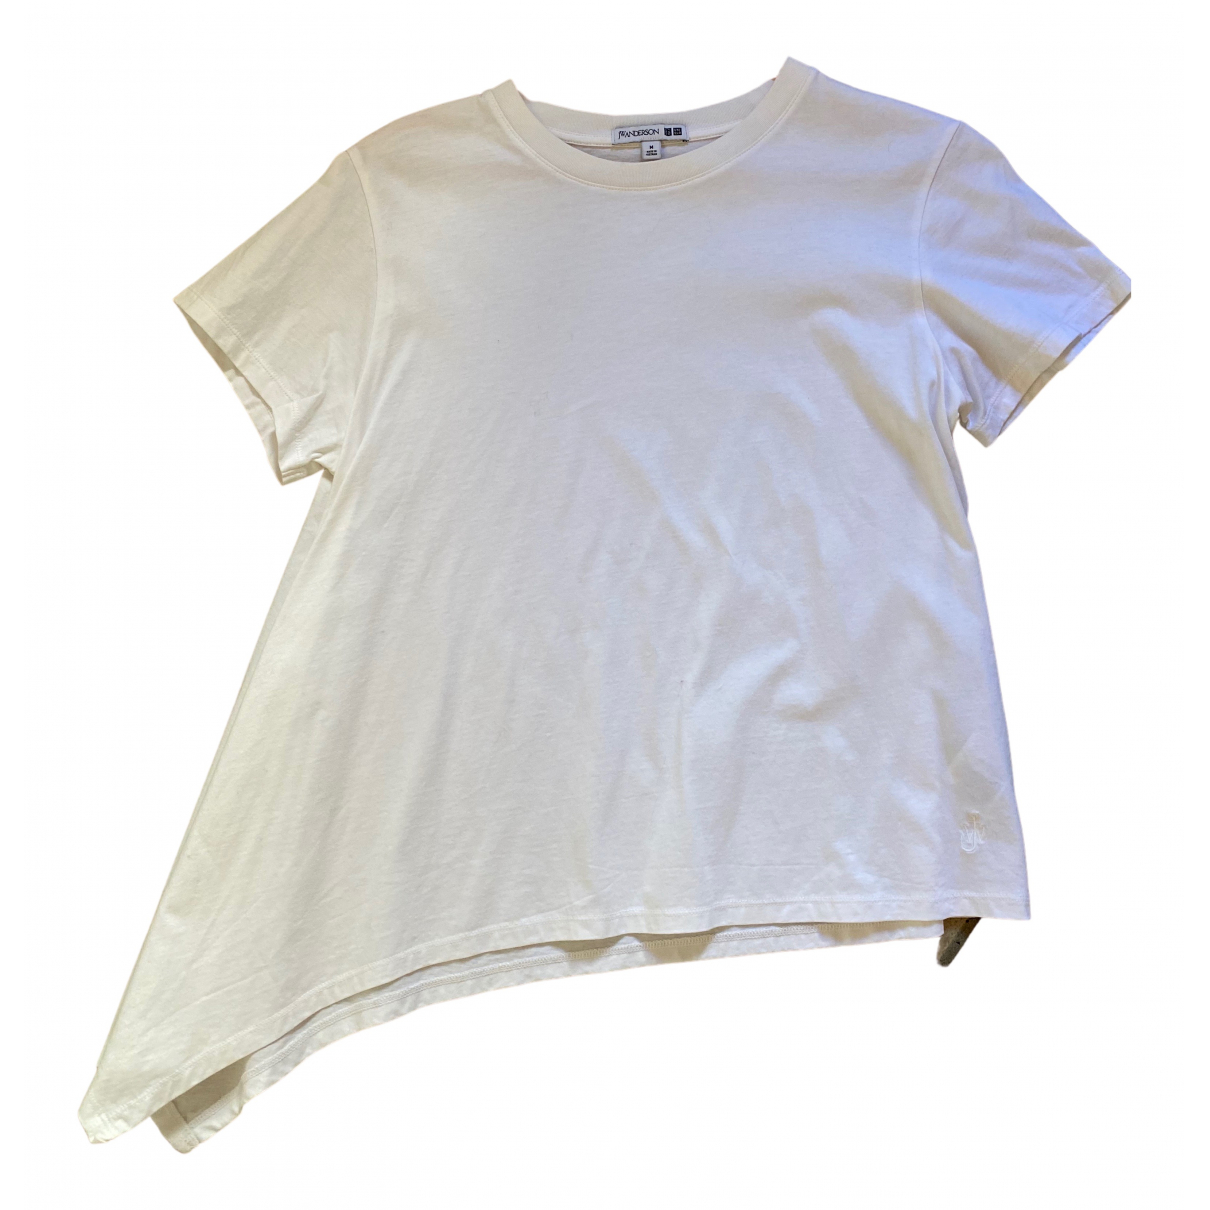 J.w. Anderson \N White Cotton  top for Women M International